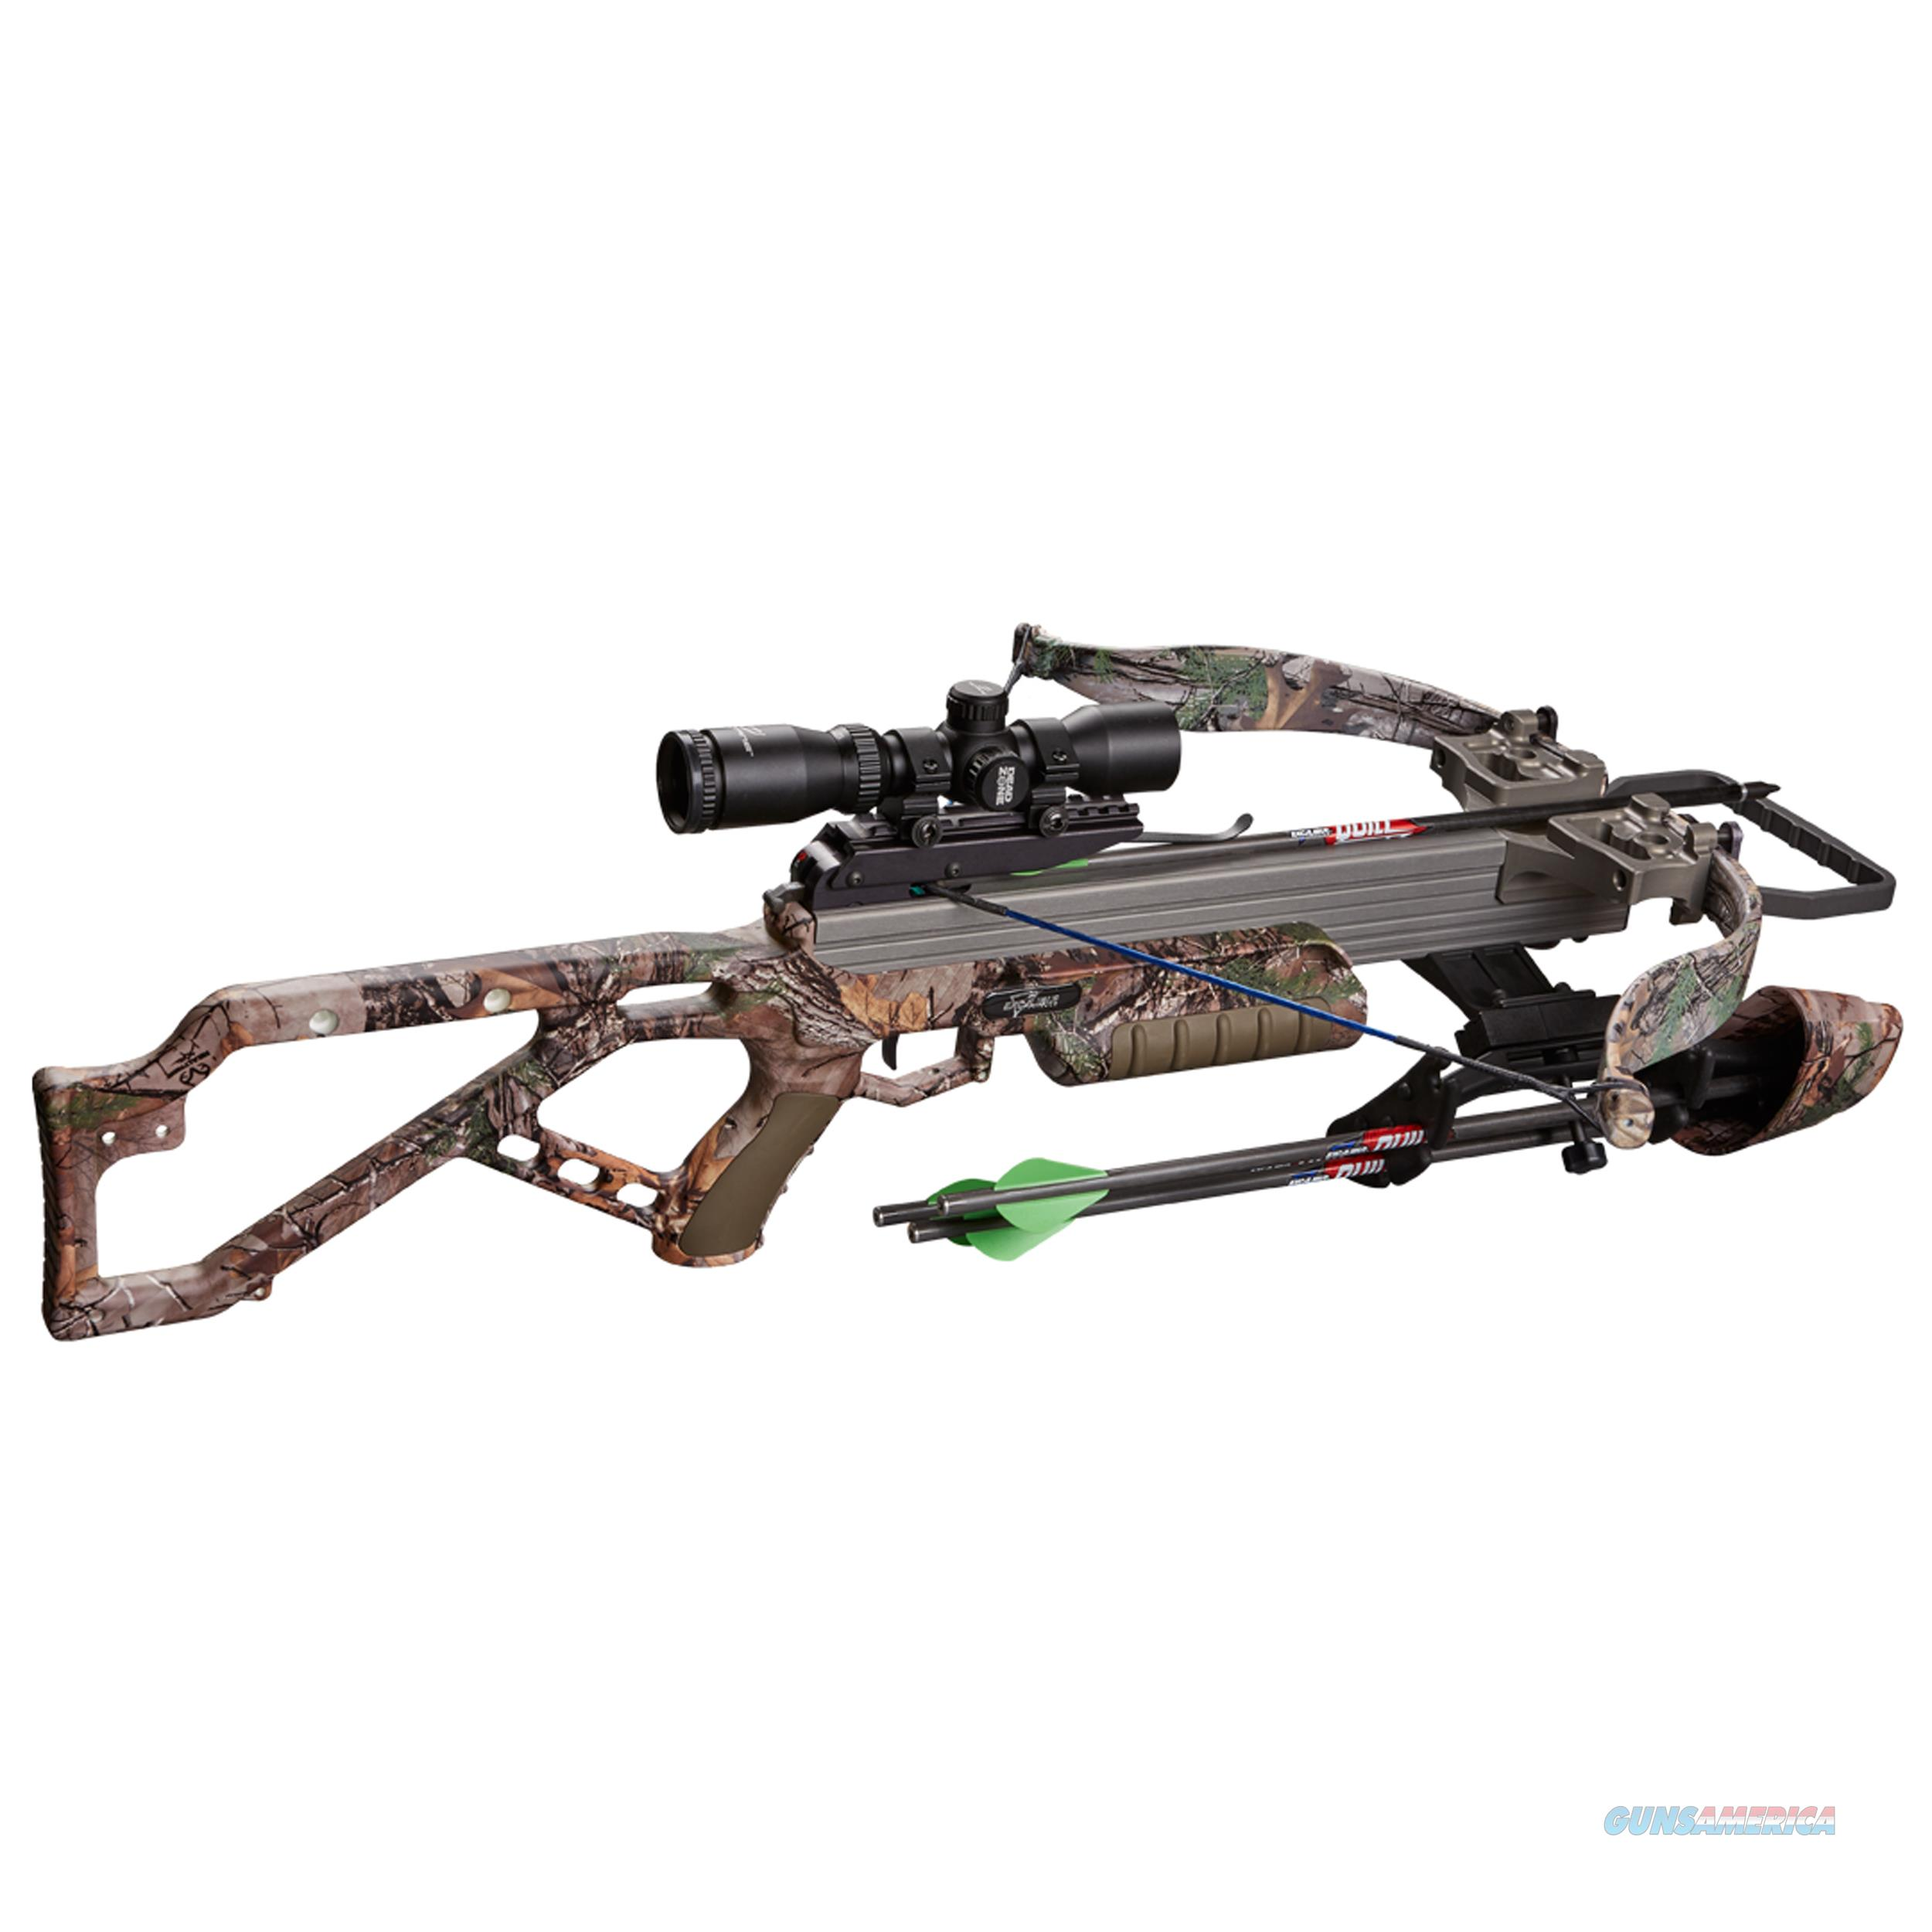 Excalibur Micro 315 With Dz Litestuff Package Realtree Xtra 3315  Non-Guns > Archery > Bows > Crossbows